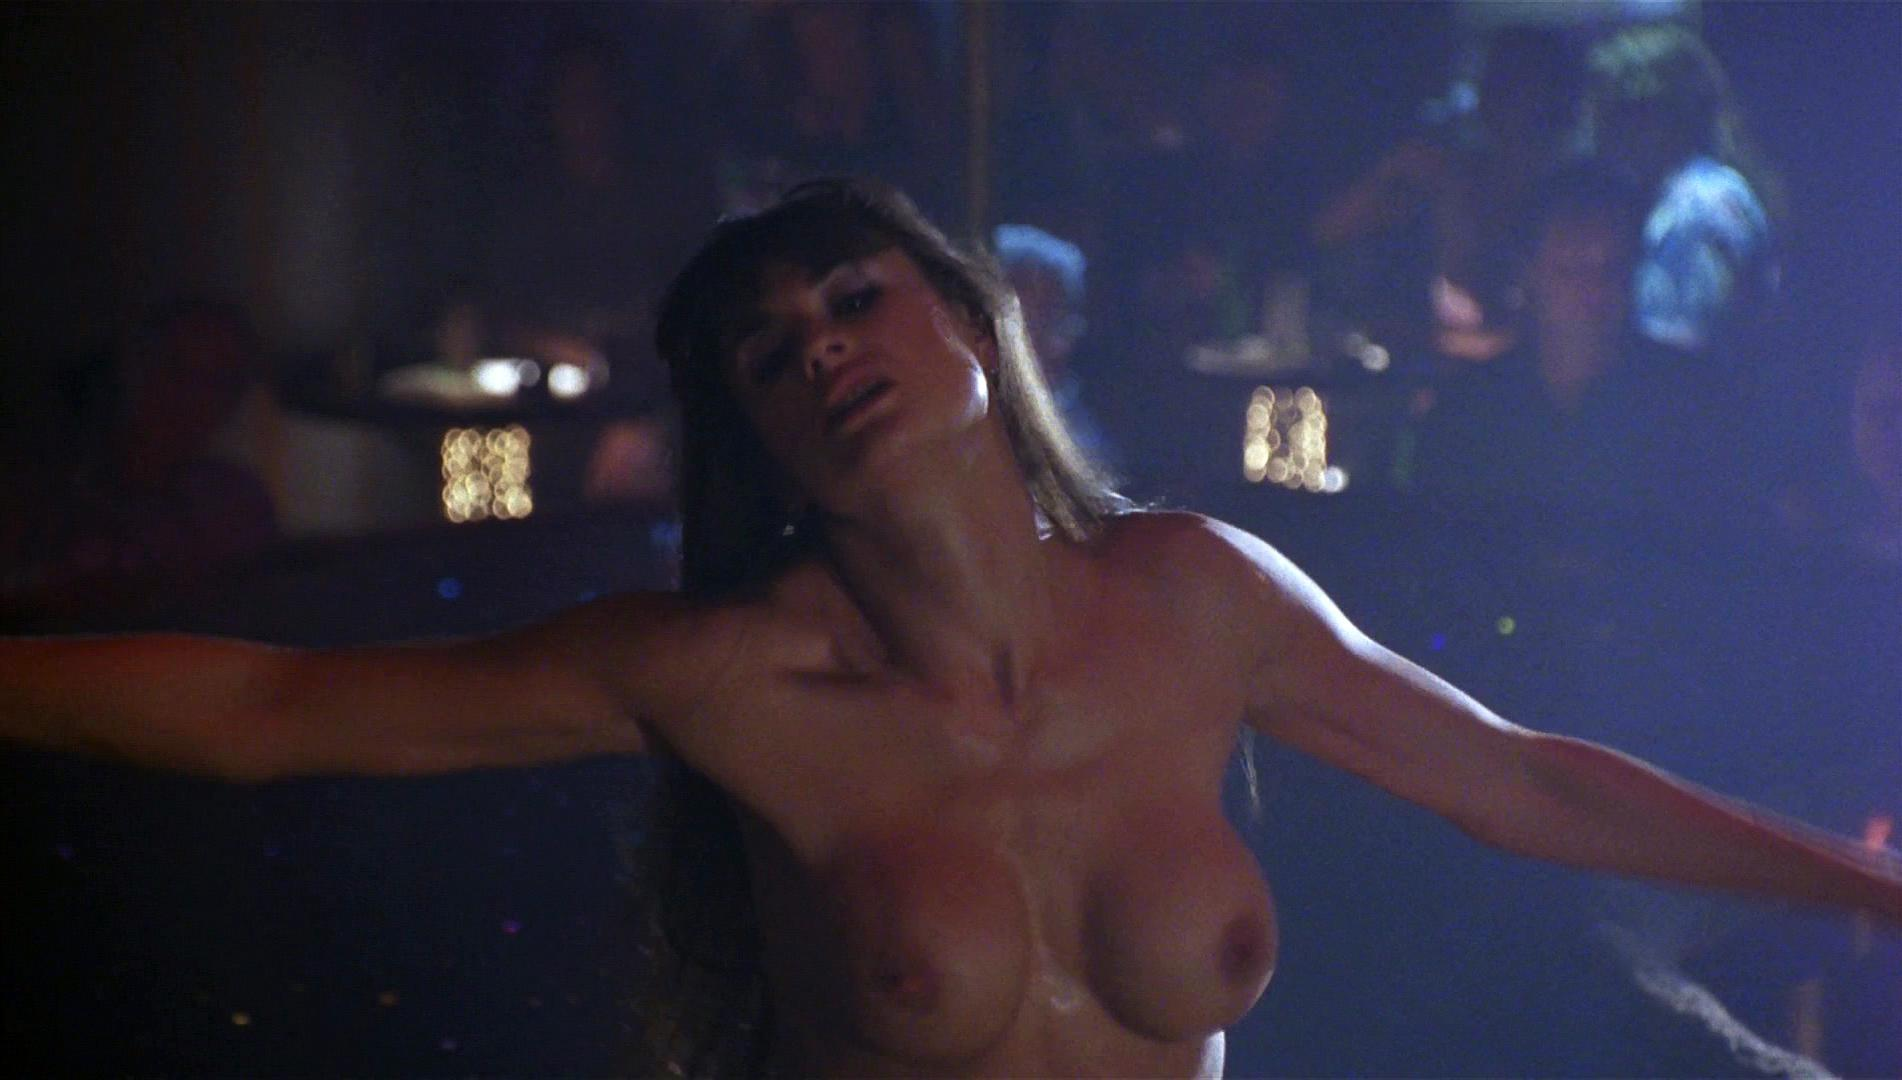 Nude Video Celebs  Demi Moore Nude - Striptease 1996-5602